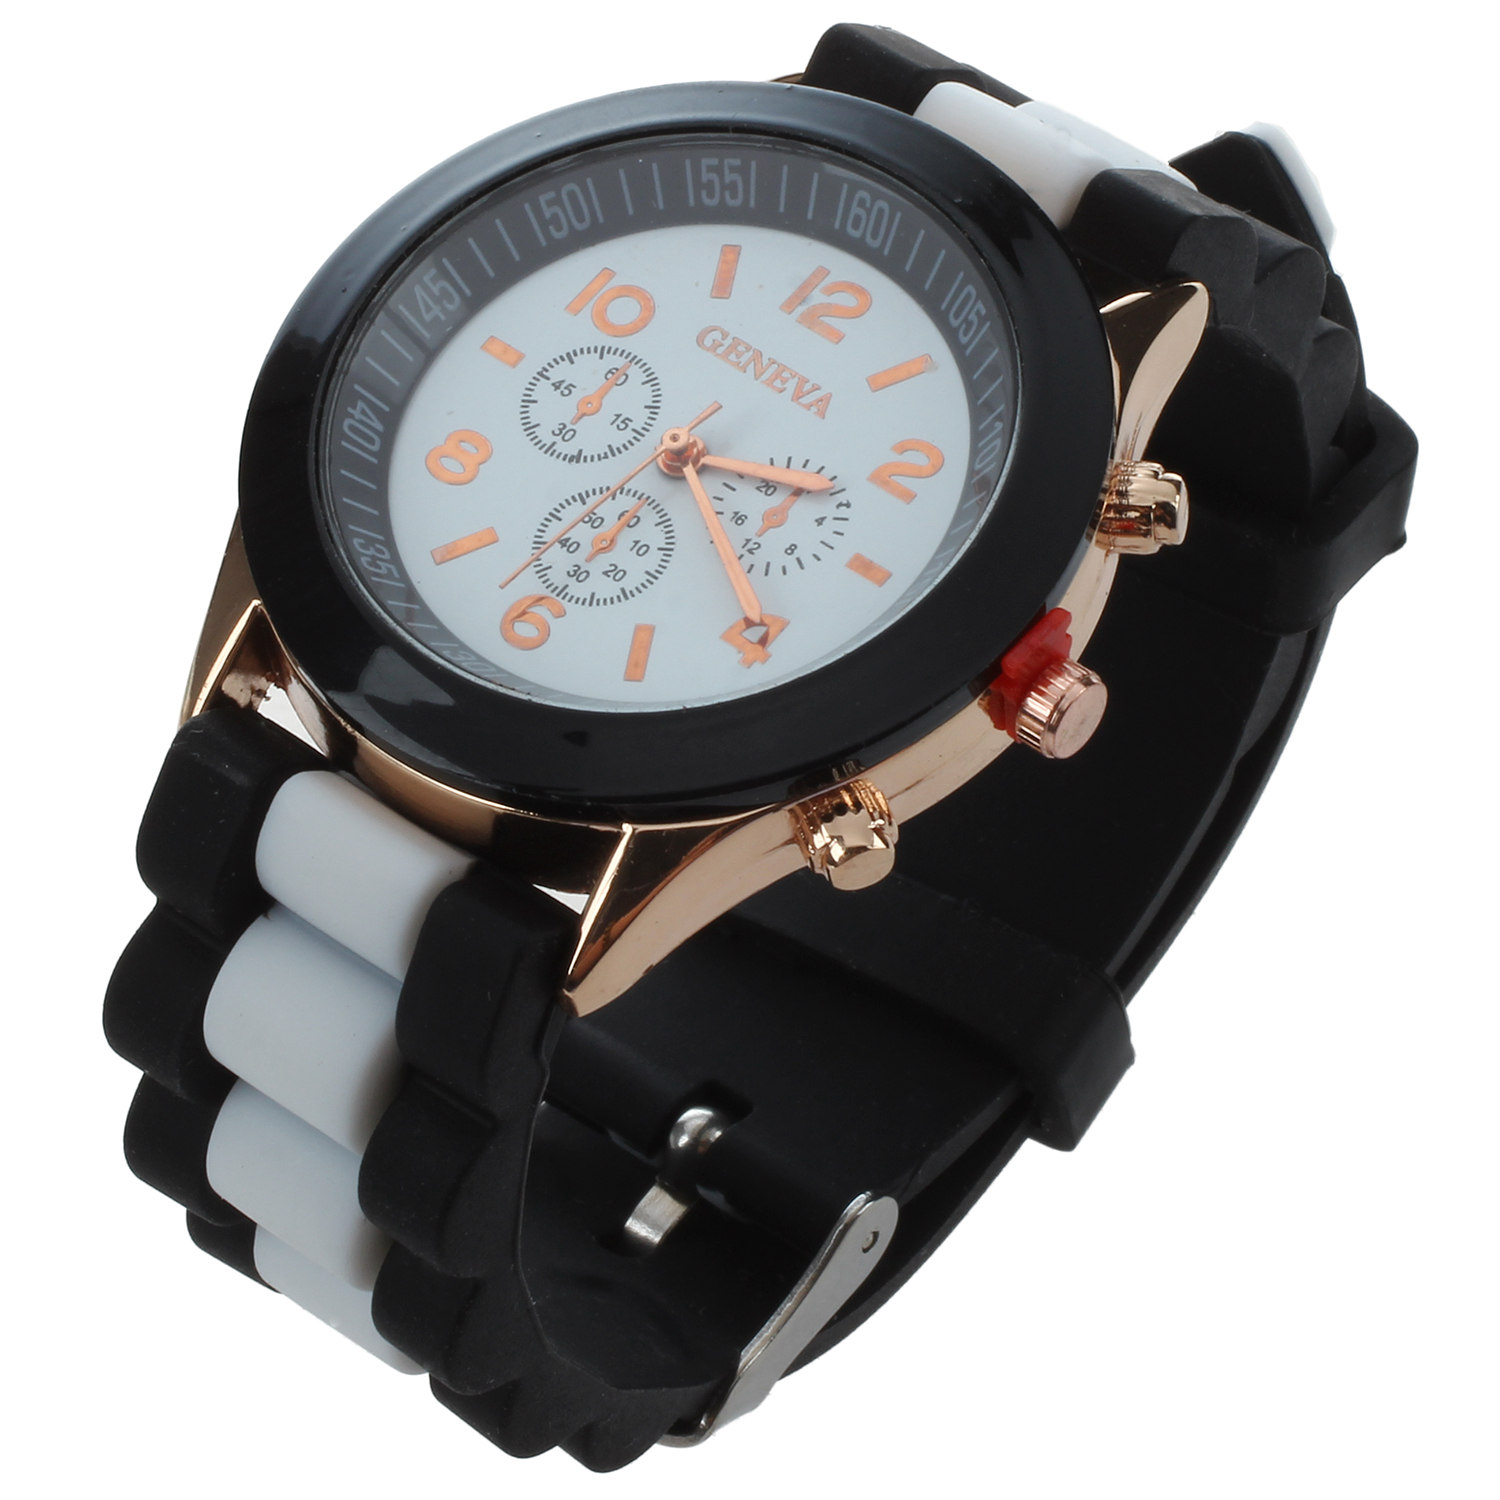 Mens Womens Watches Silicone Jelly Gel Quartz Analog Sports Wrist Watch Colour:White black 2017 new fashion women geneva silicone rubber jelly gel quartz analog sports wrist watch 0vjs